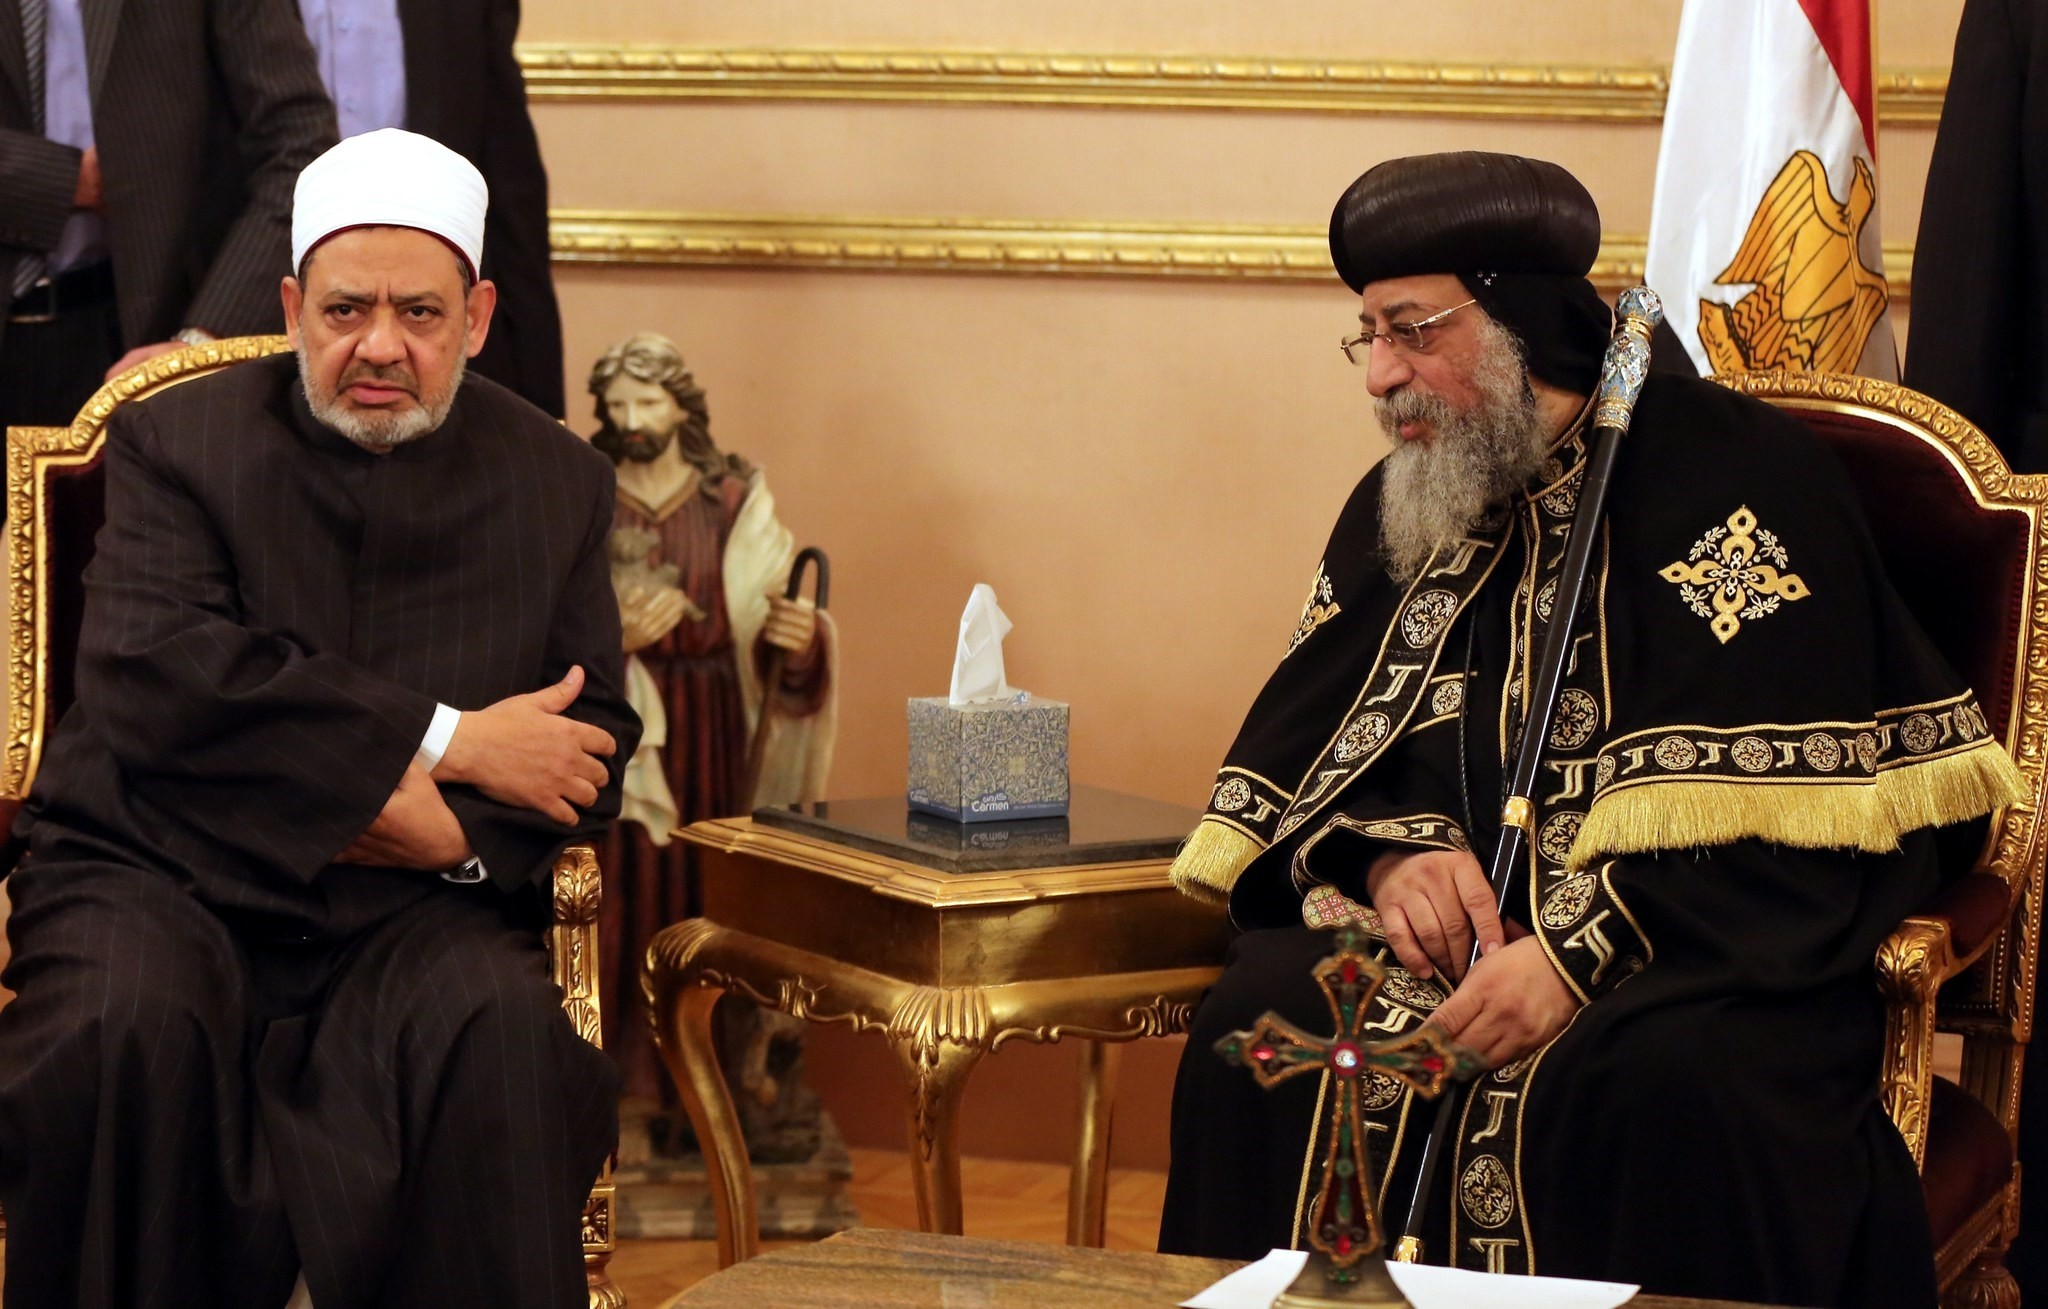 Grand Imam of Al-Azhar Sheikh Ahmed el-Tayeb (L) offers condolences to Pope Tawadros II (R) of Alexandria, head of the Egyptian Coptic Orthodox Church, after the killing of Egyptian Christians in Libya. (EPA Photo)